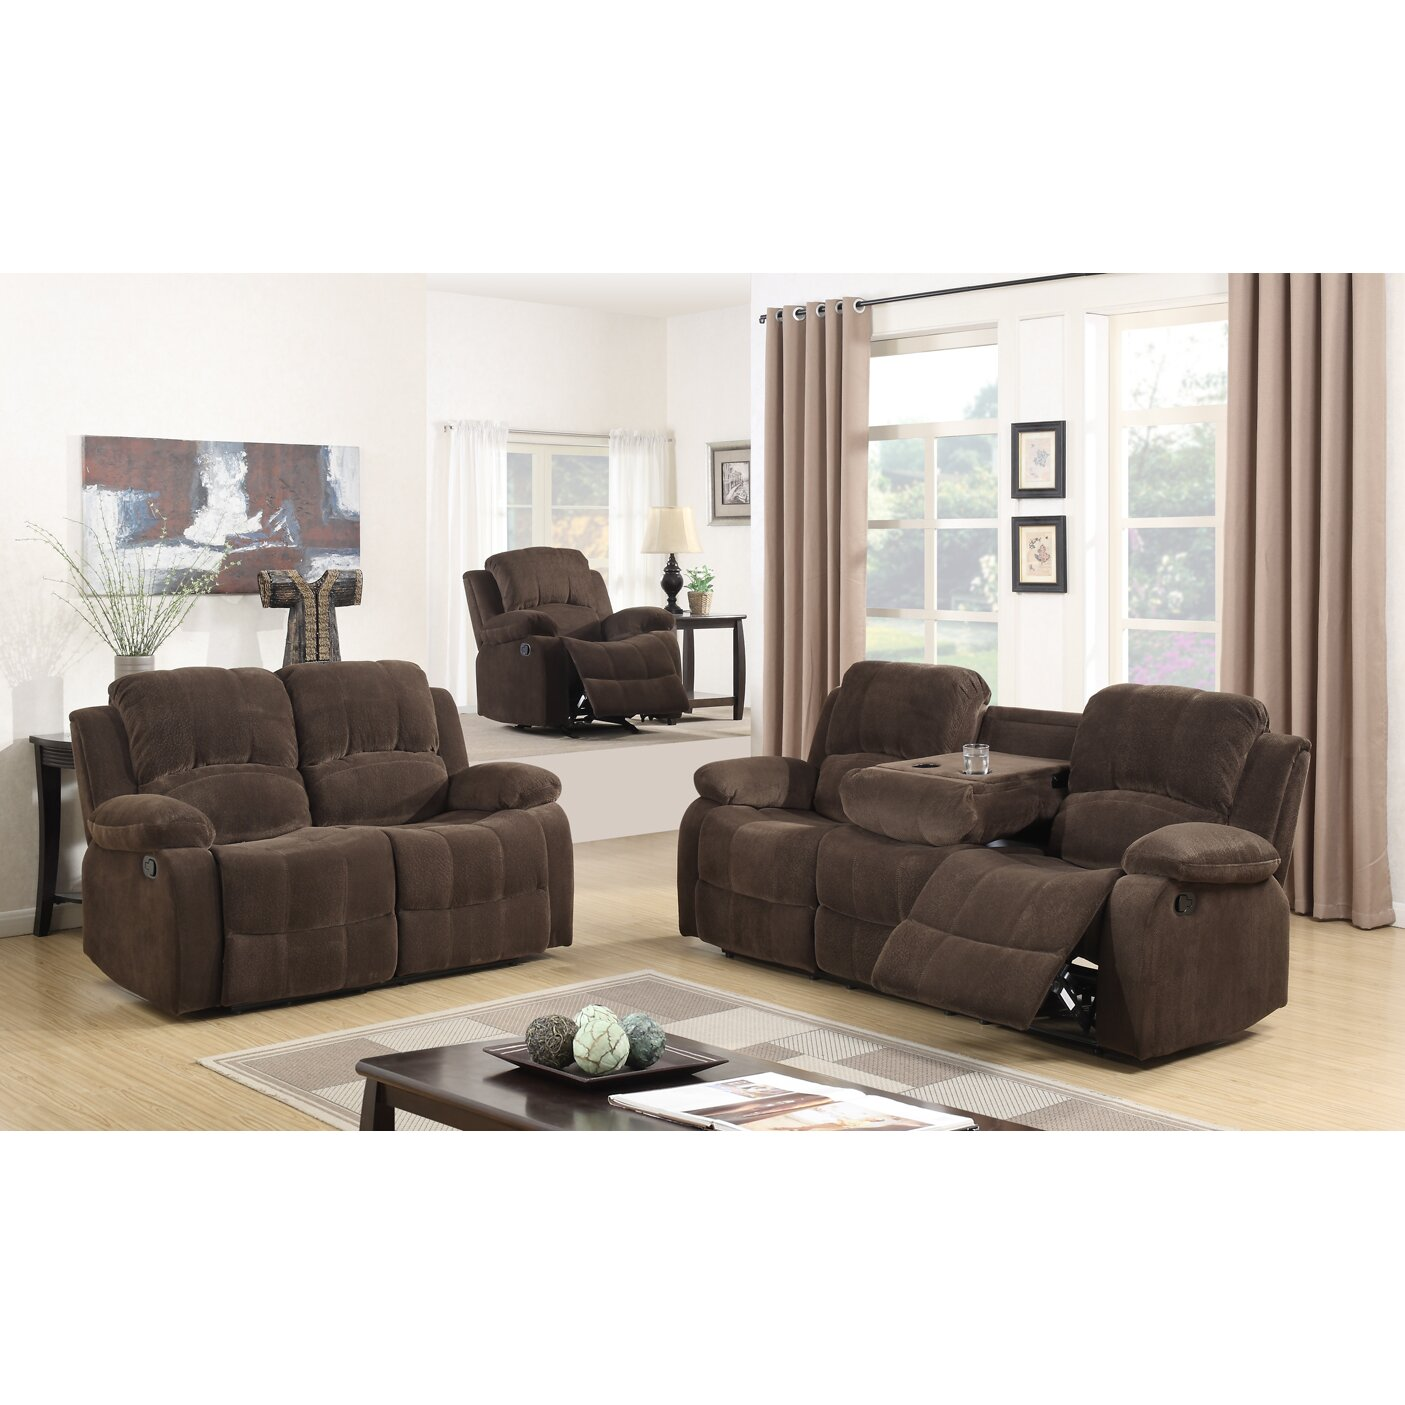 Best quality furniture fabric 3 piece recliner living room for Drawing room furniture set